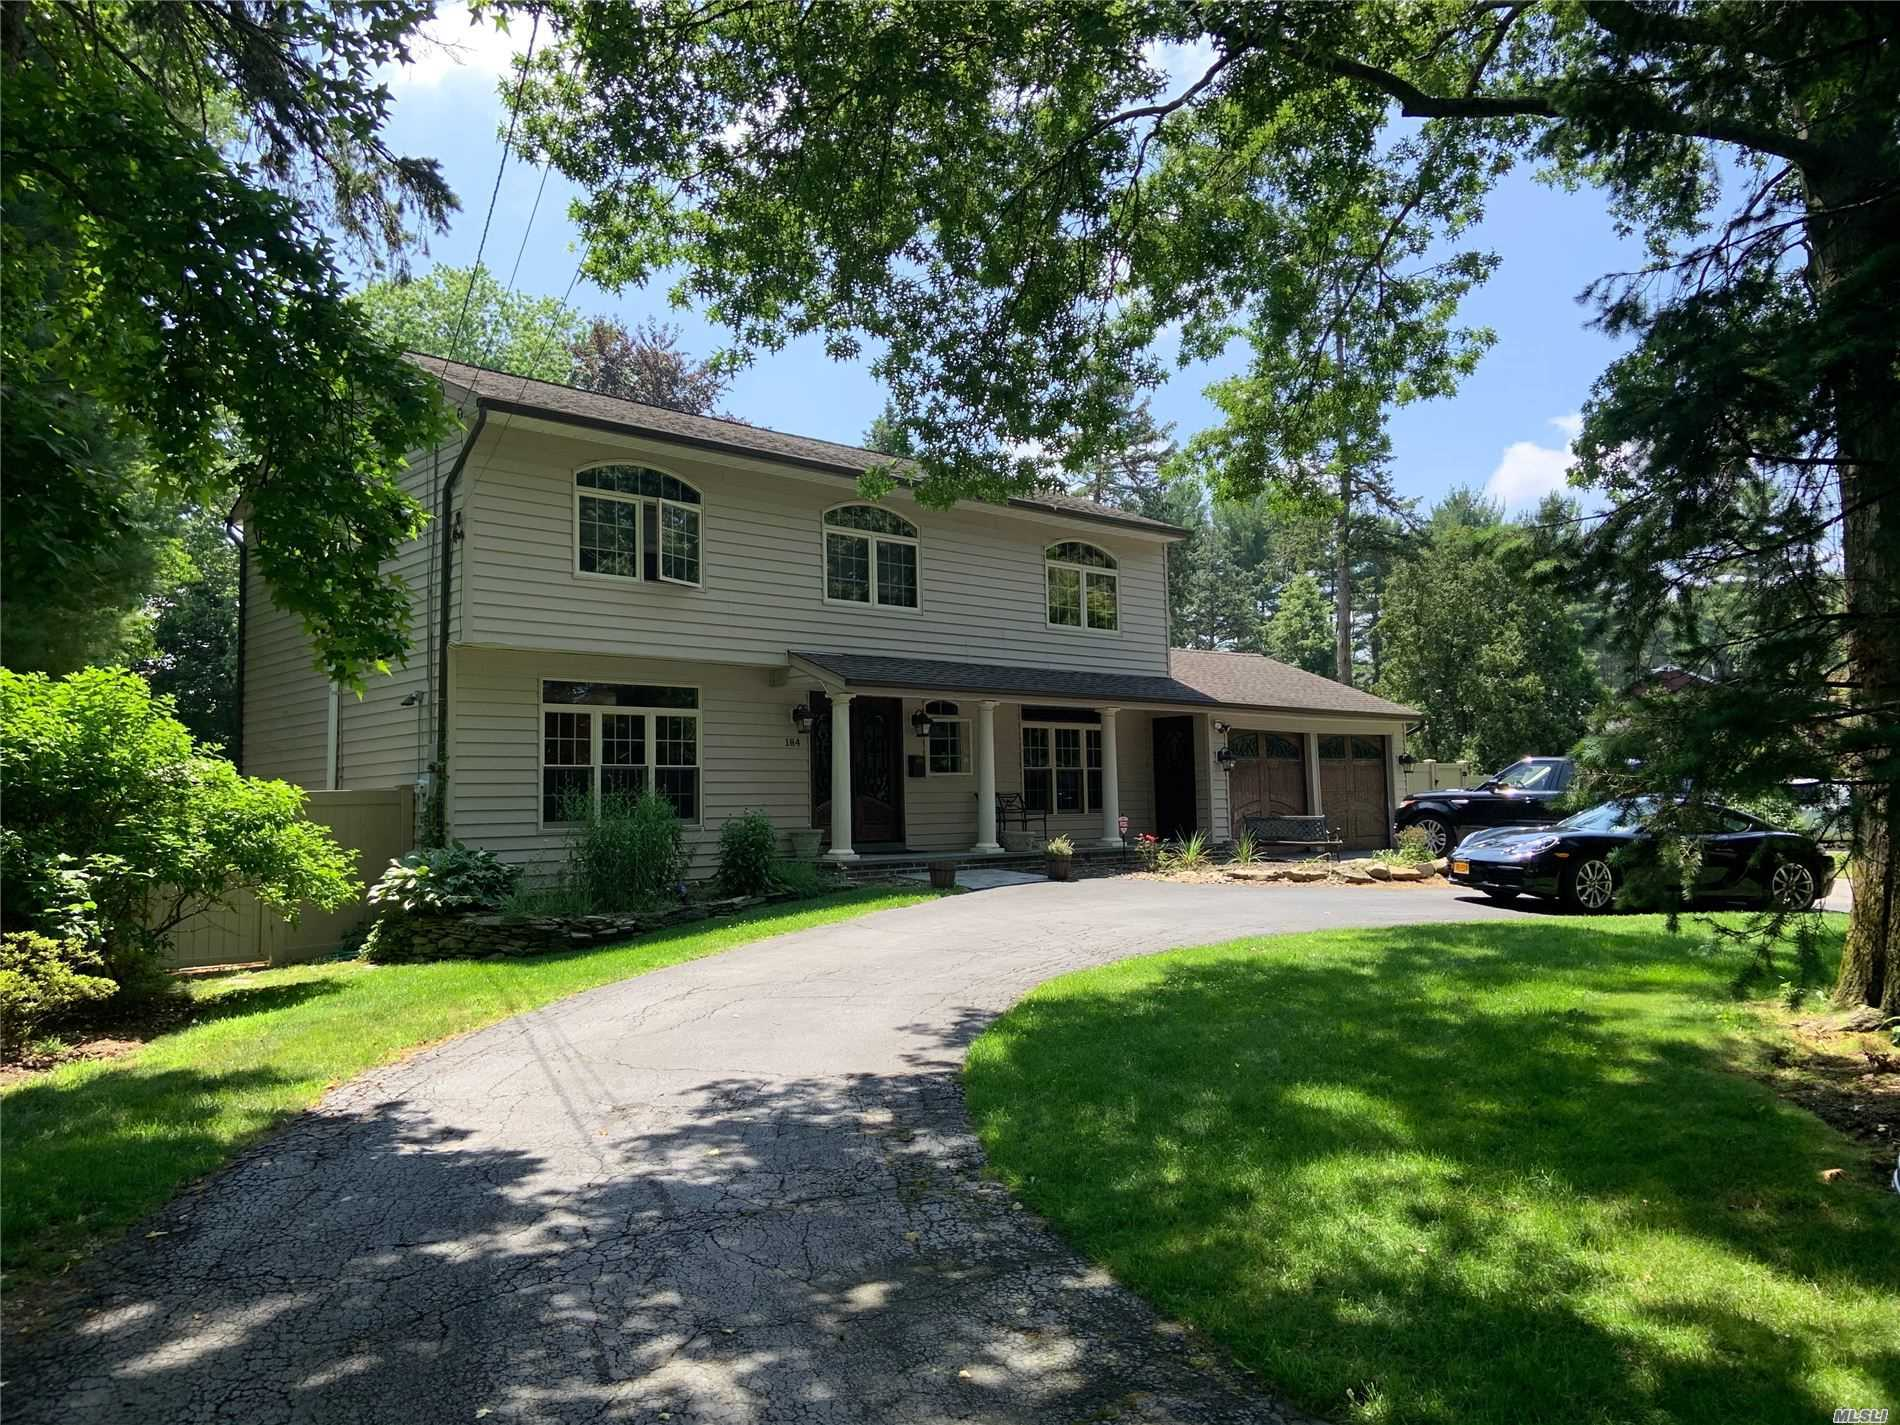 184 COLD SPRING ROAD Rd - Syosset, New York